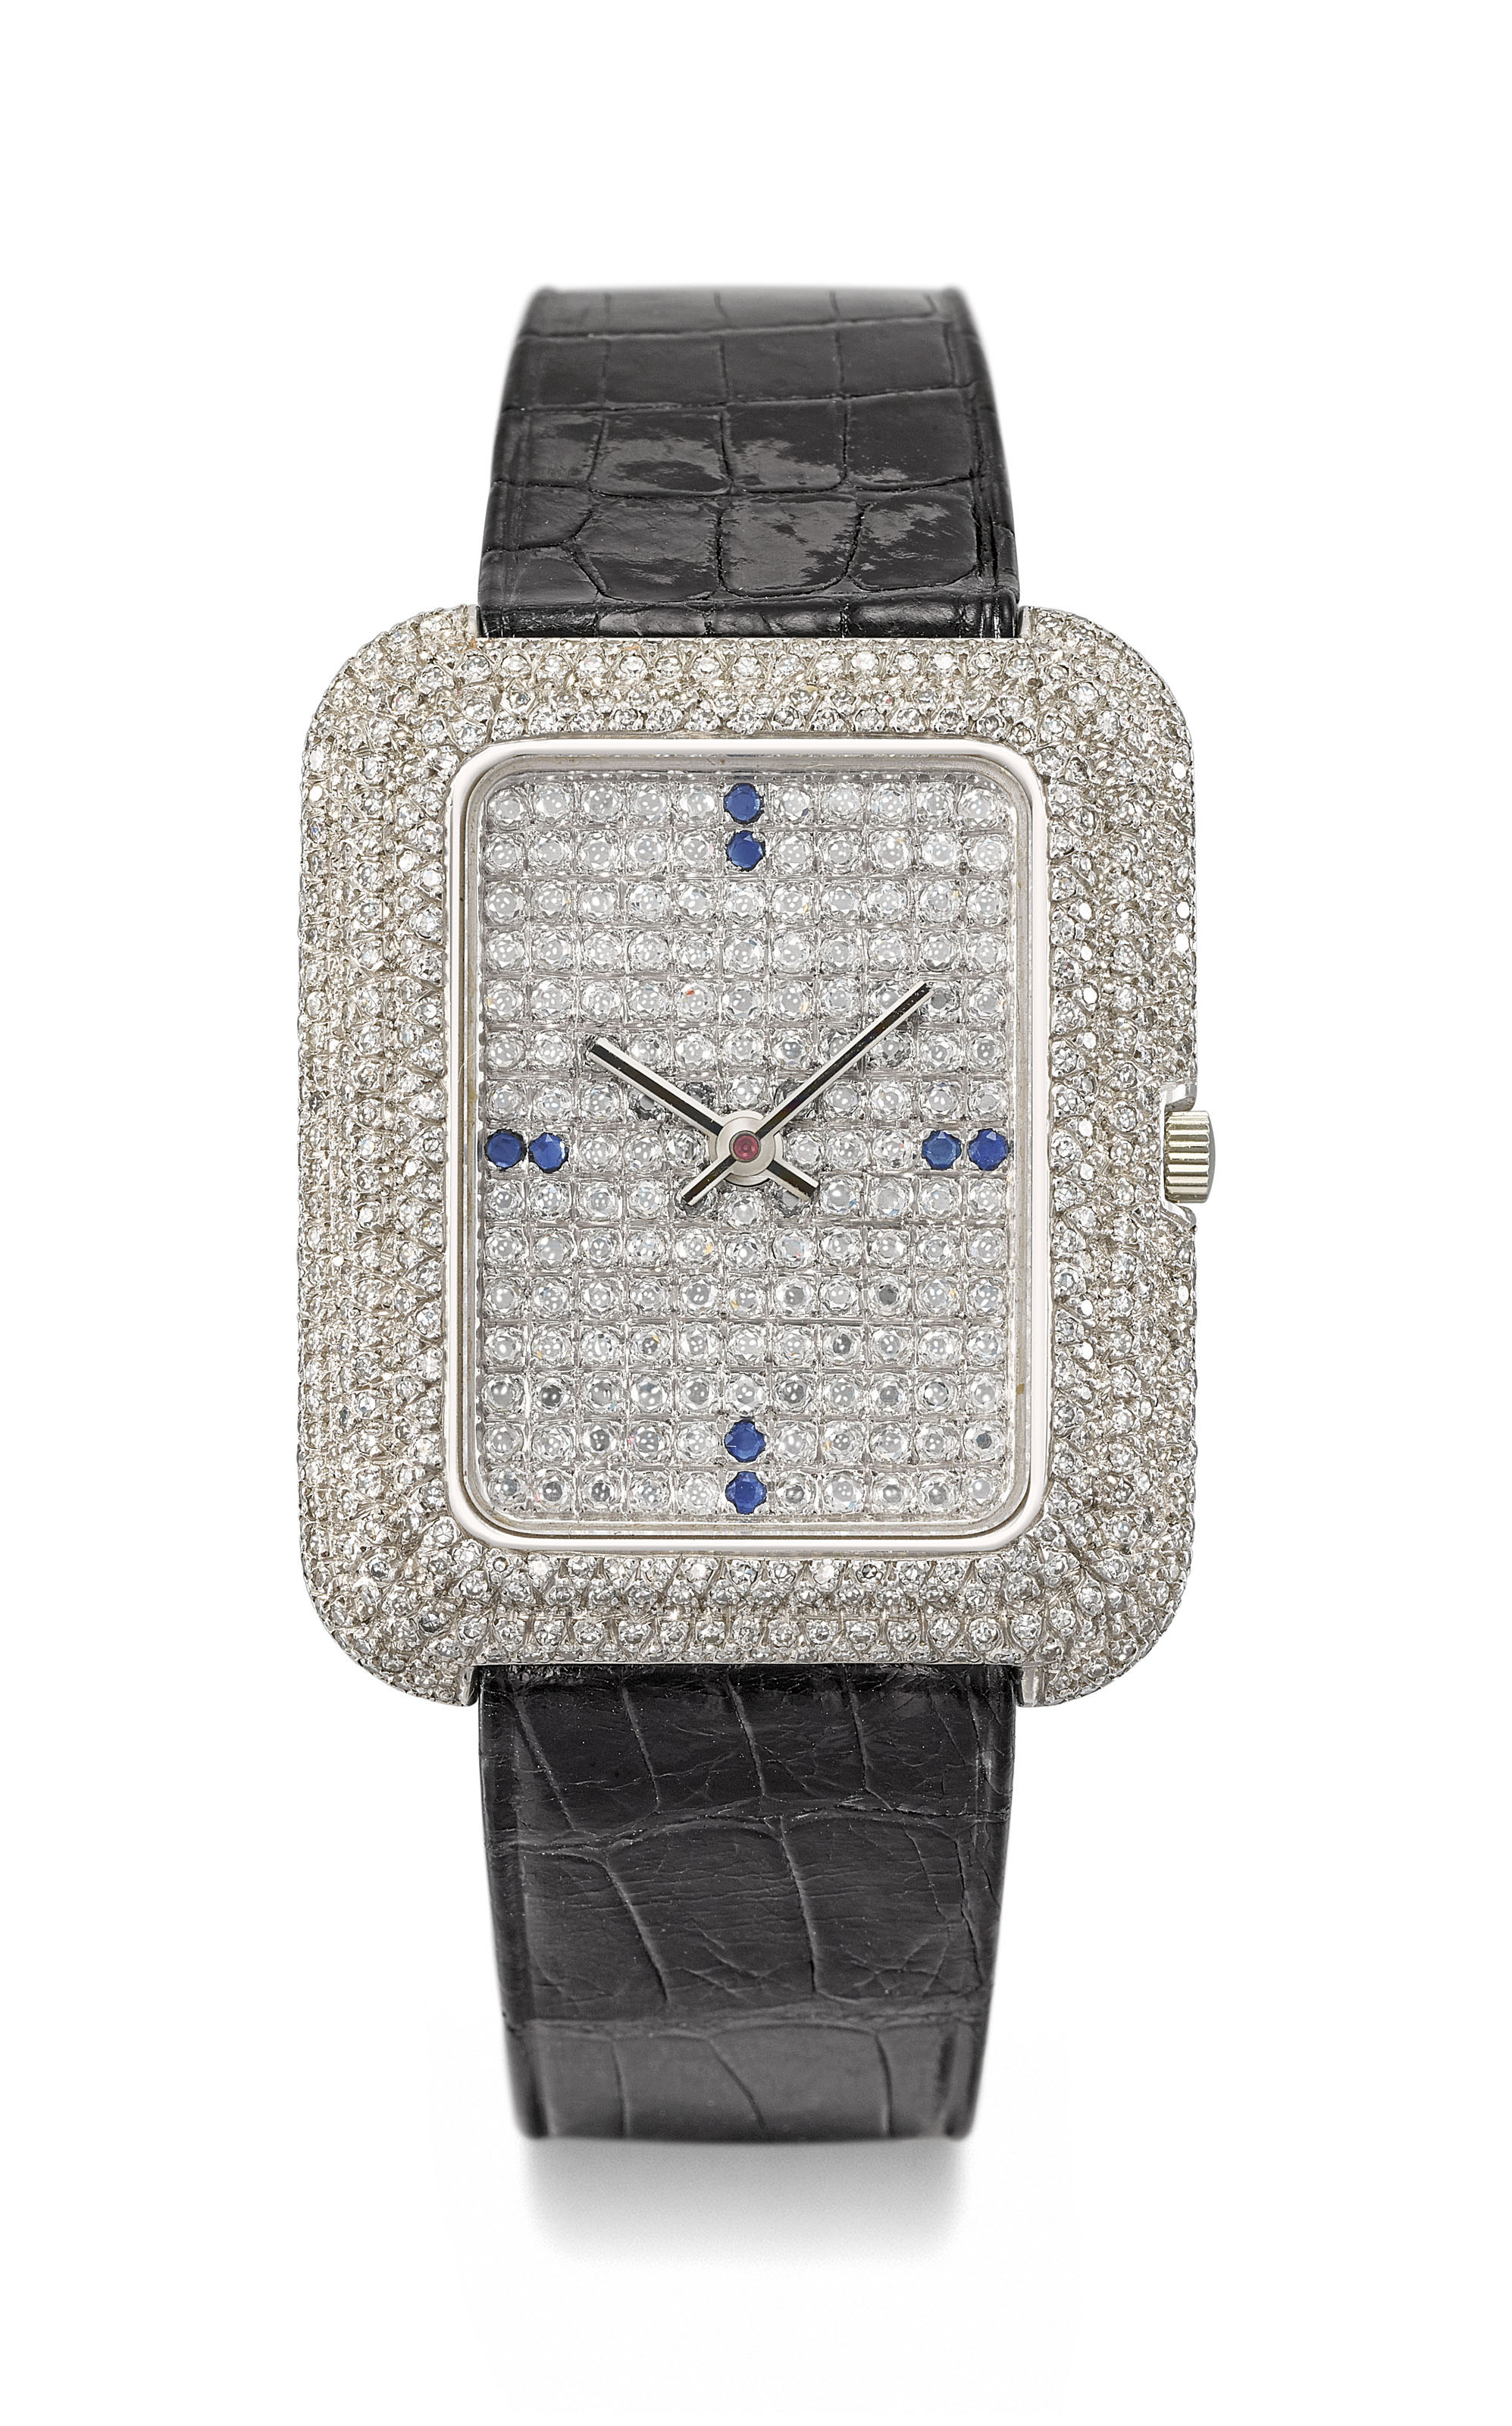 Piaget A fine, large and attr